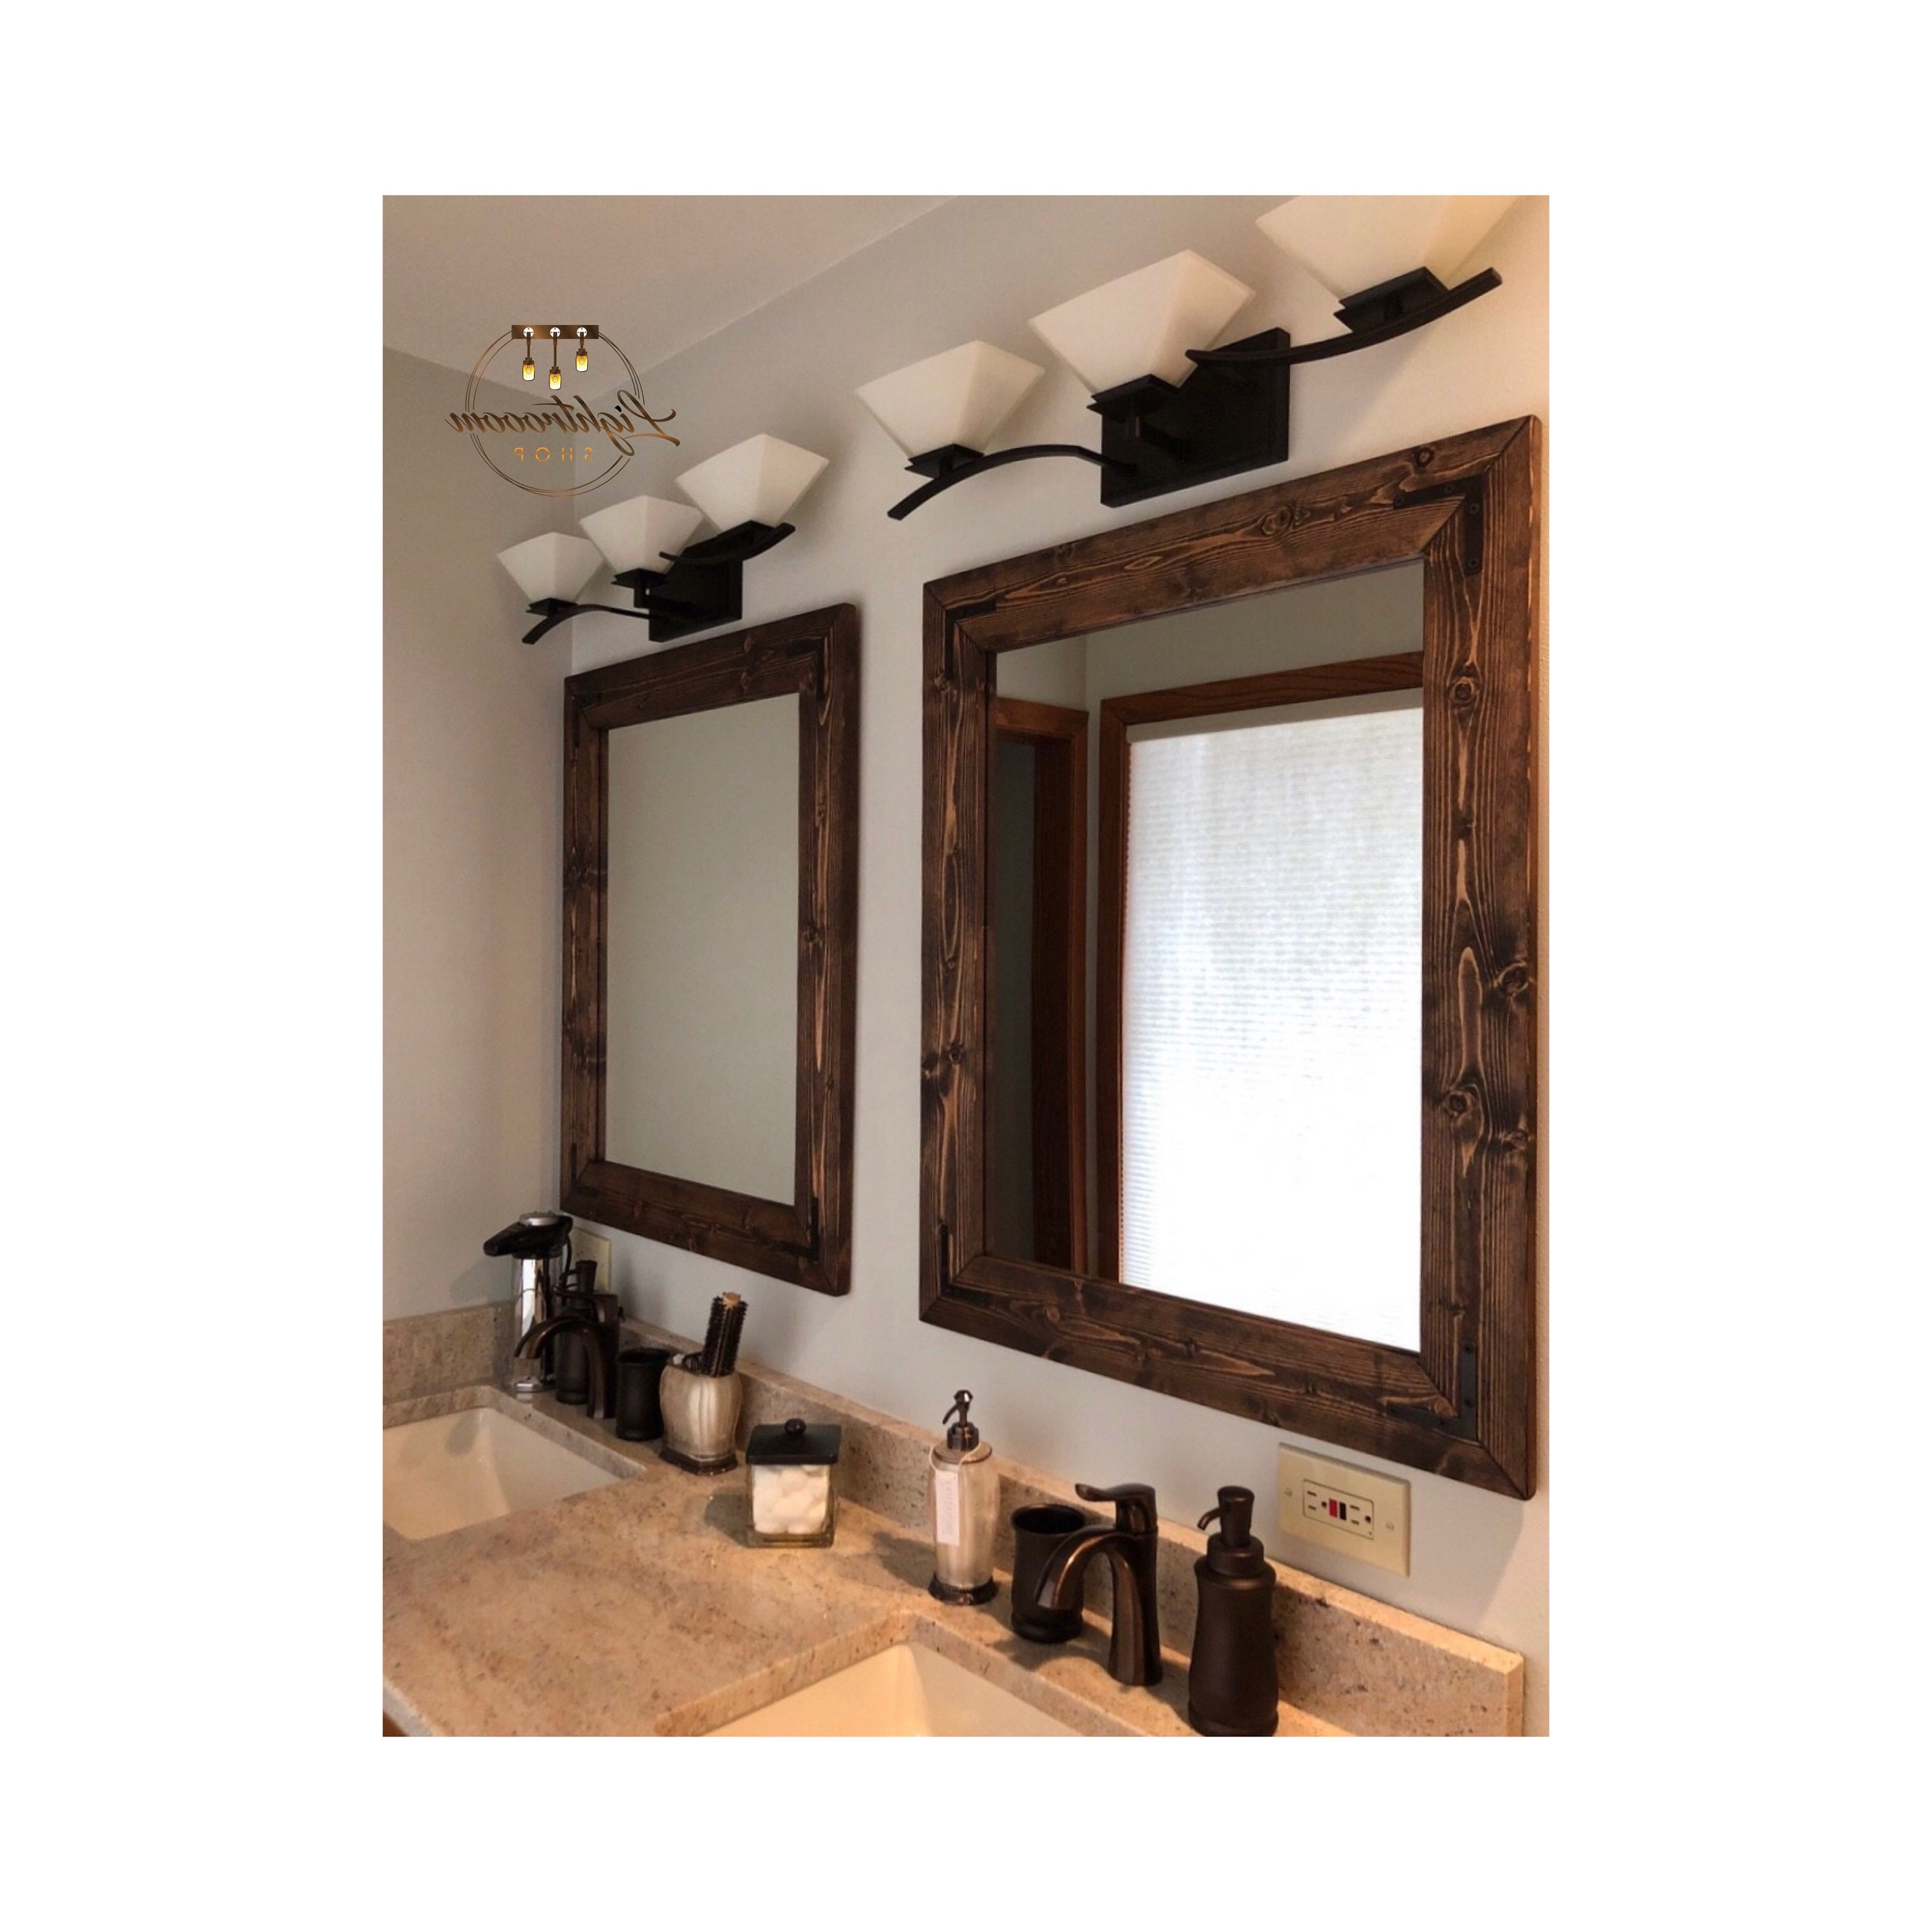 Trendy Espresso Wall Mirrors For Espresso Mirror Set, Cottage Mirrors, Double Mirrors, Floor, Bathroom,  Double Vanity Mirrors, Wooden Mirrors, Framed Mirrors, Wall Mirrors (View 18 of 20)